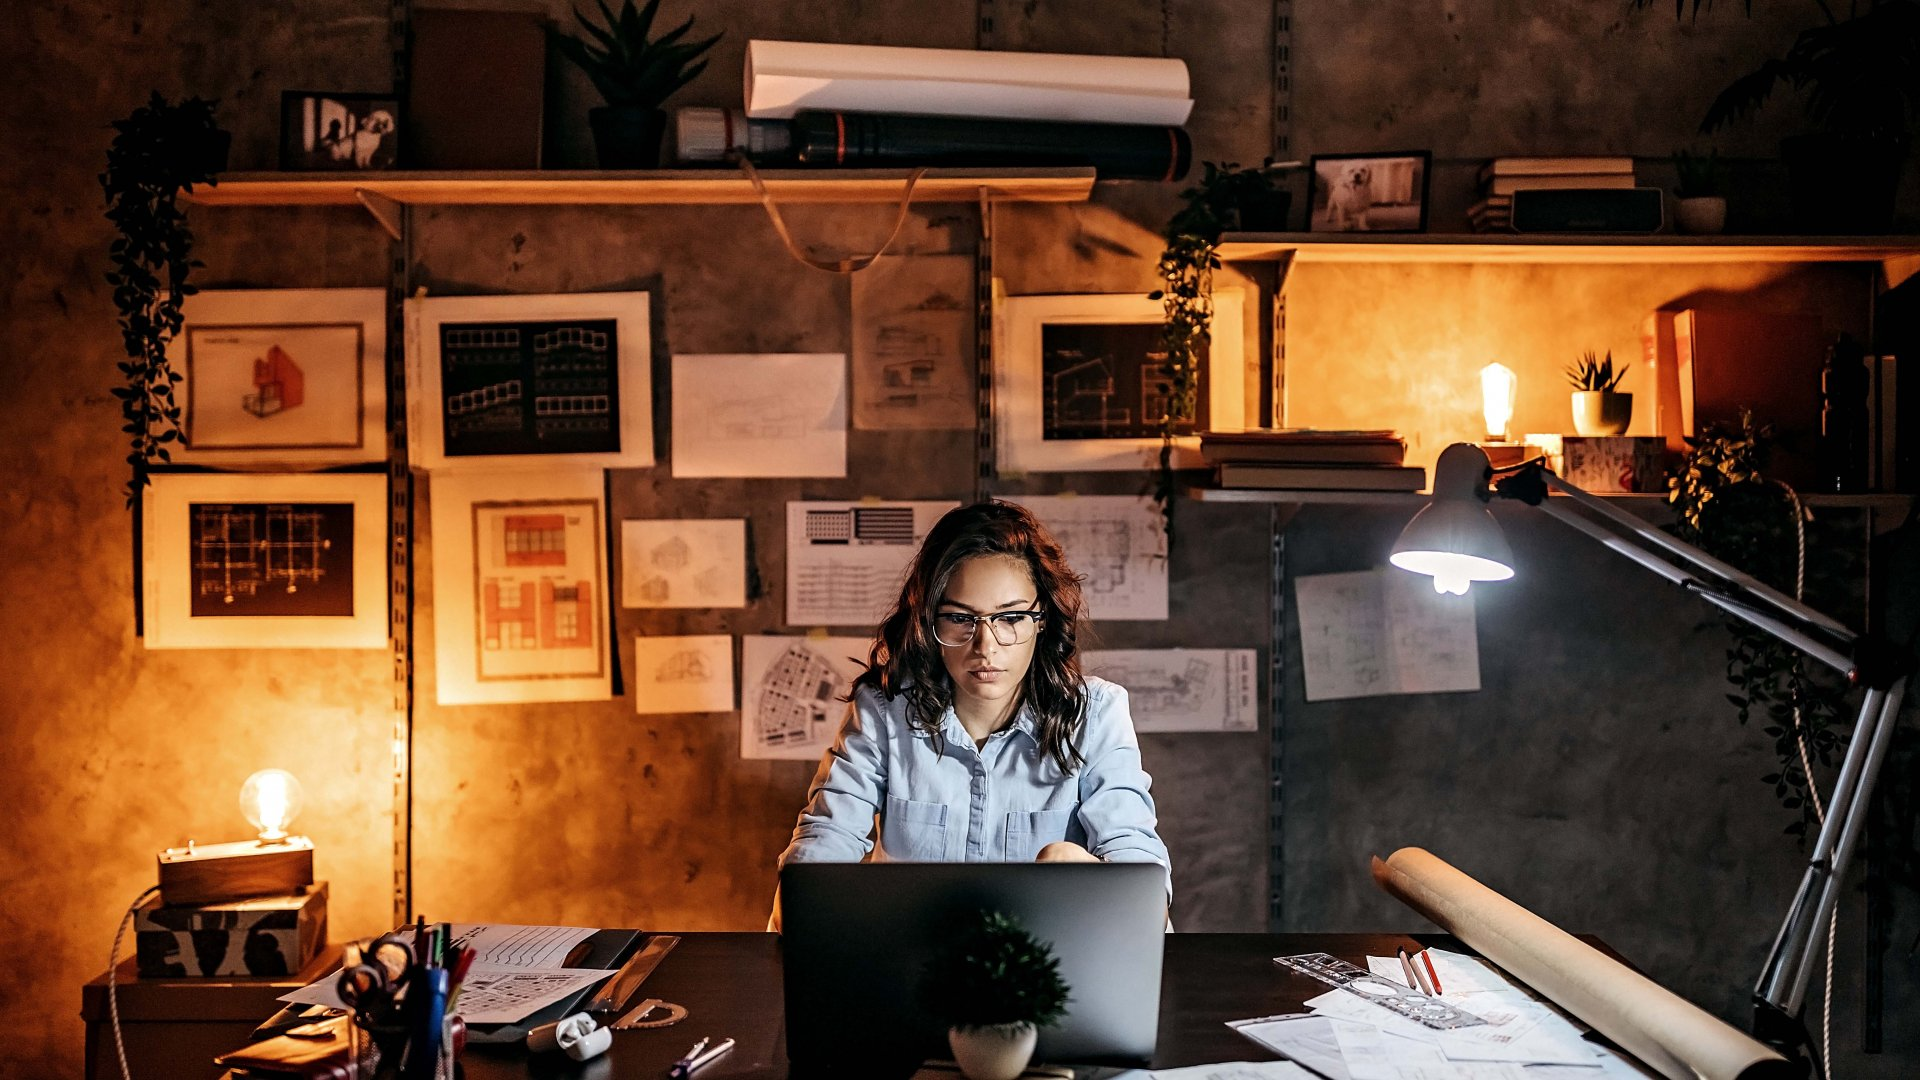 Creative Gig Workers Should Protect Their Business in Difficult Times